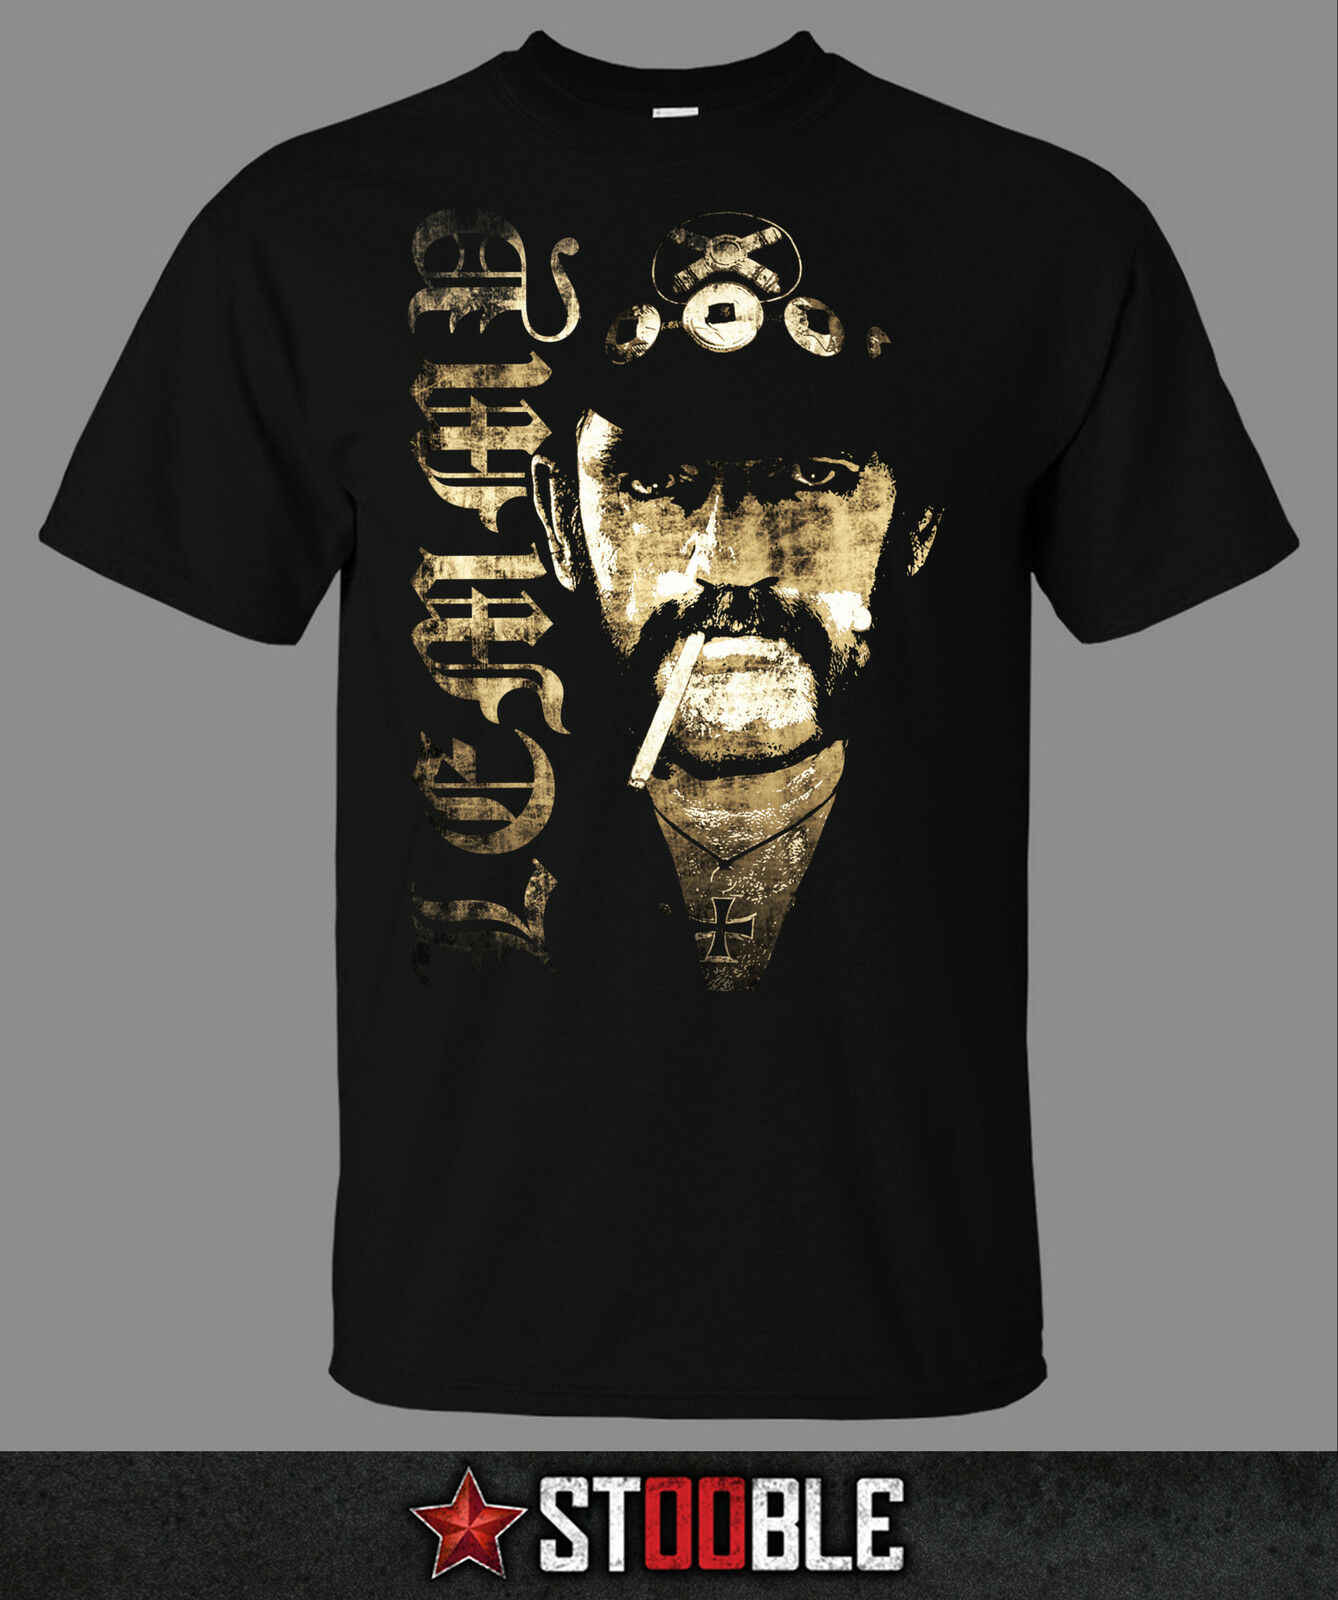 T-Shirt do Lemmy-Direto do Distribuidor